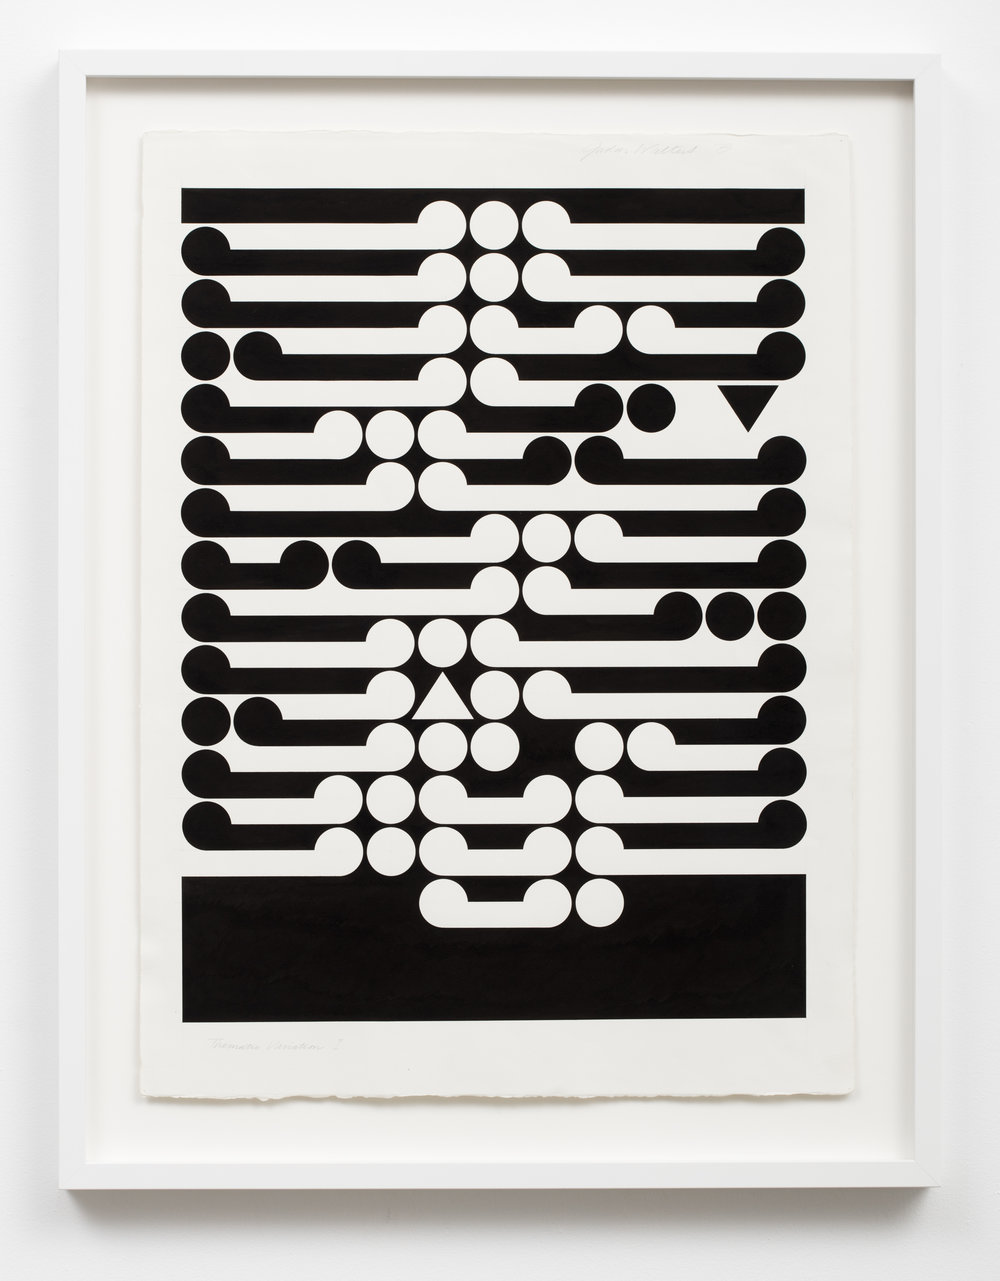 Gordon Walters,  Thematic Variation I , 1973, ink on paper, 605 x 455 image size, courtesy of Walters Estate